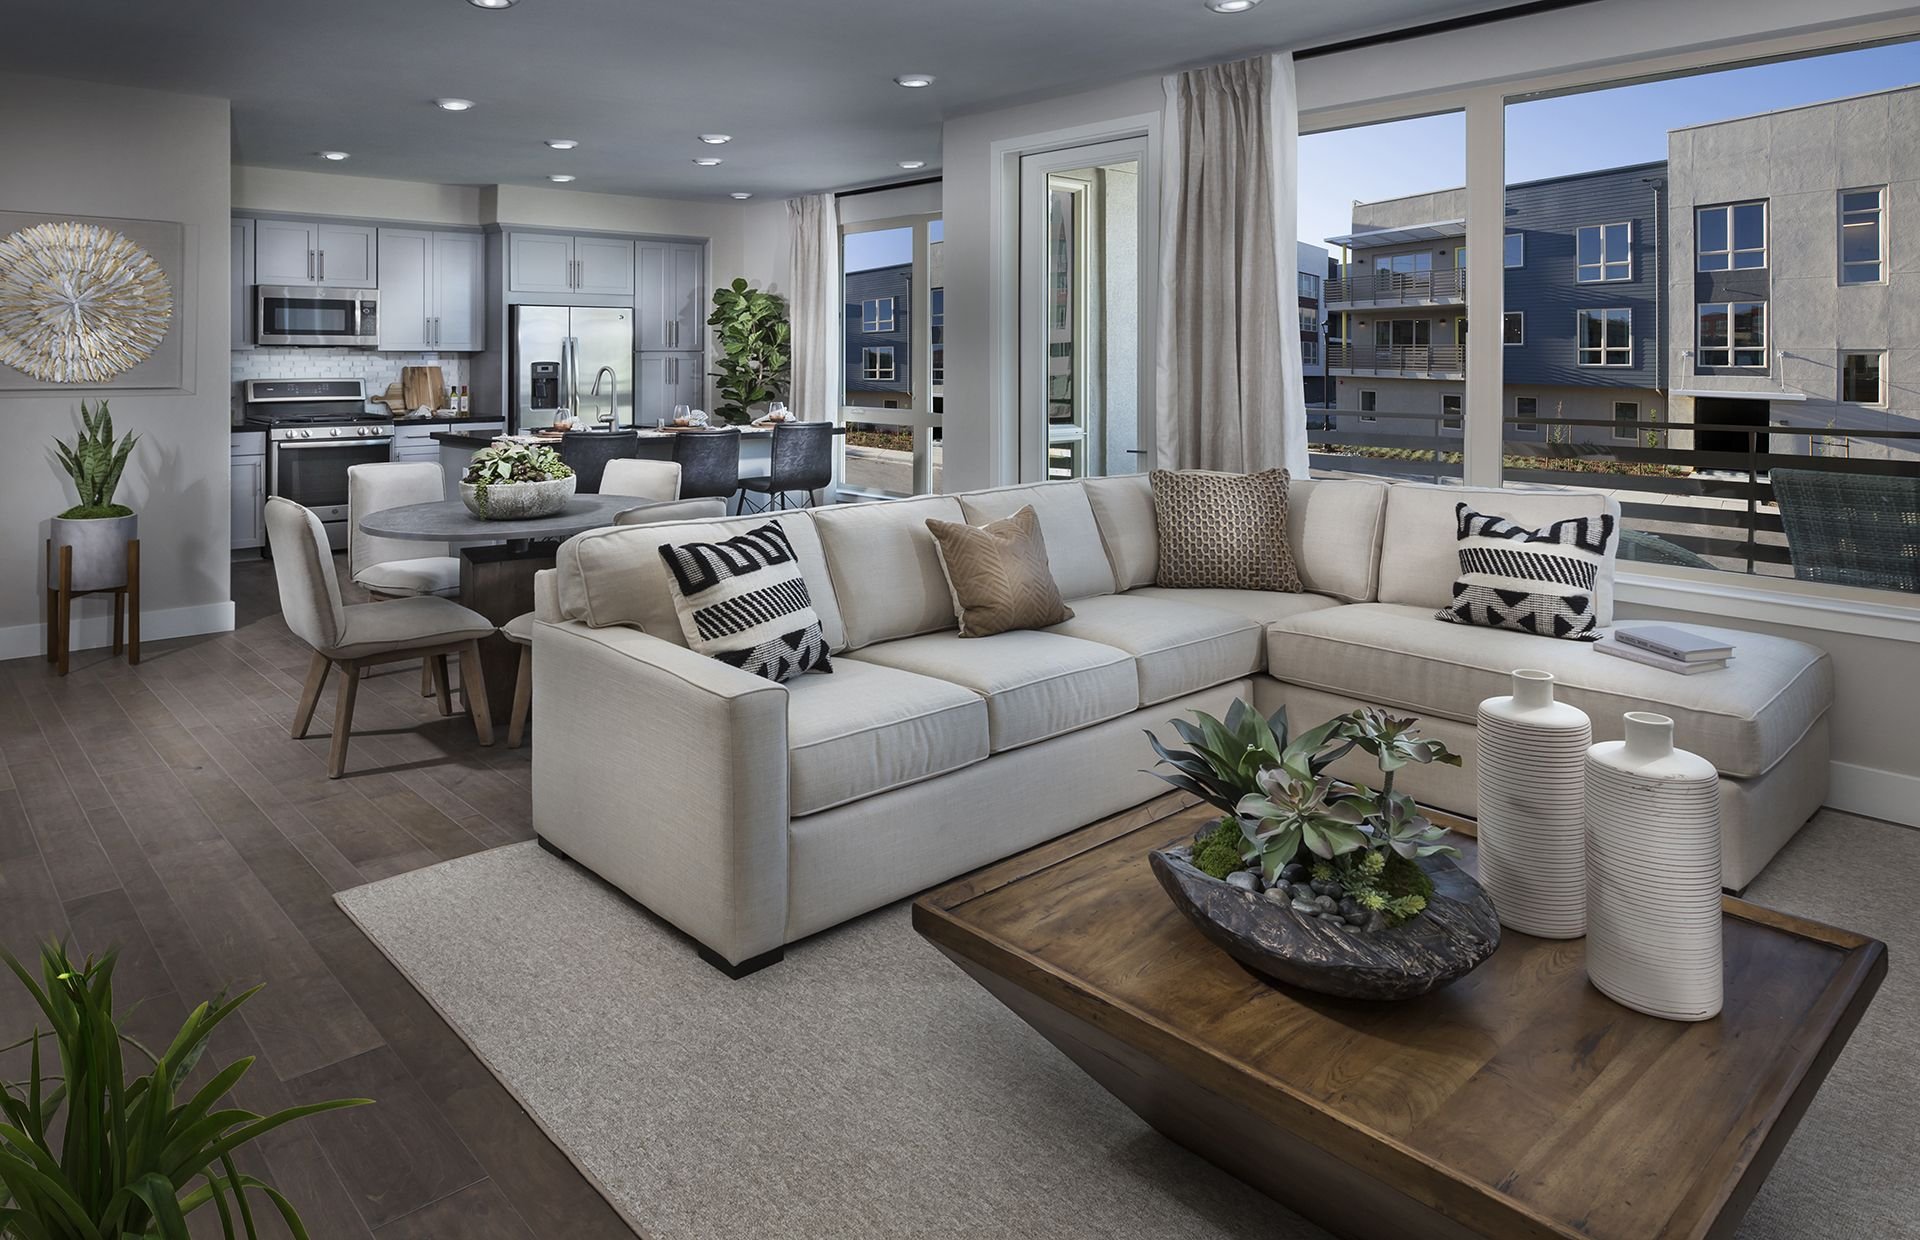 Tremendous Upscale Modern And Spacious Living At Somont In Milpitas Evergreenethics Interior Chair Design Evergreenethicsorg